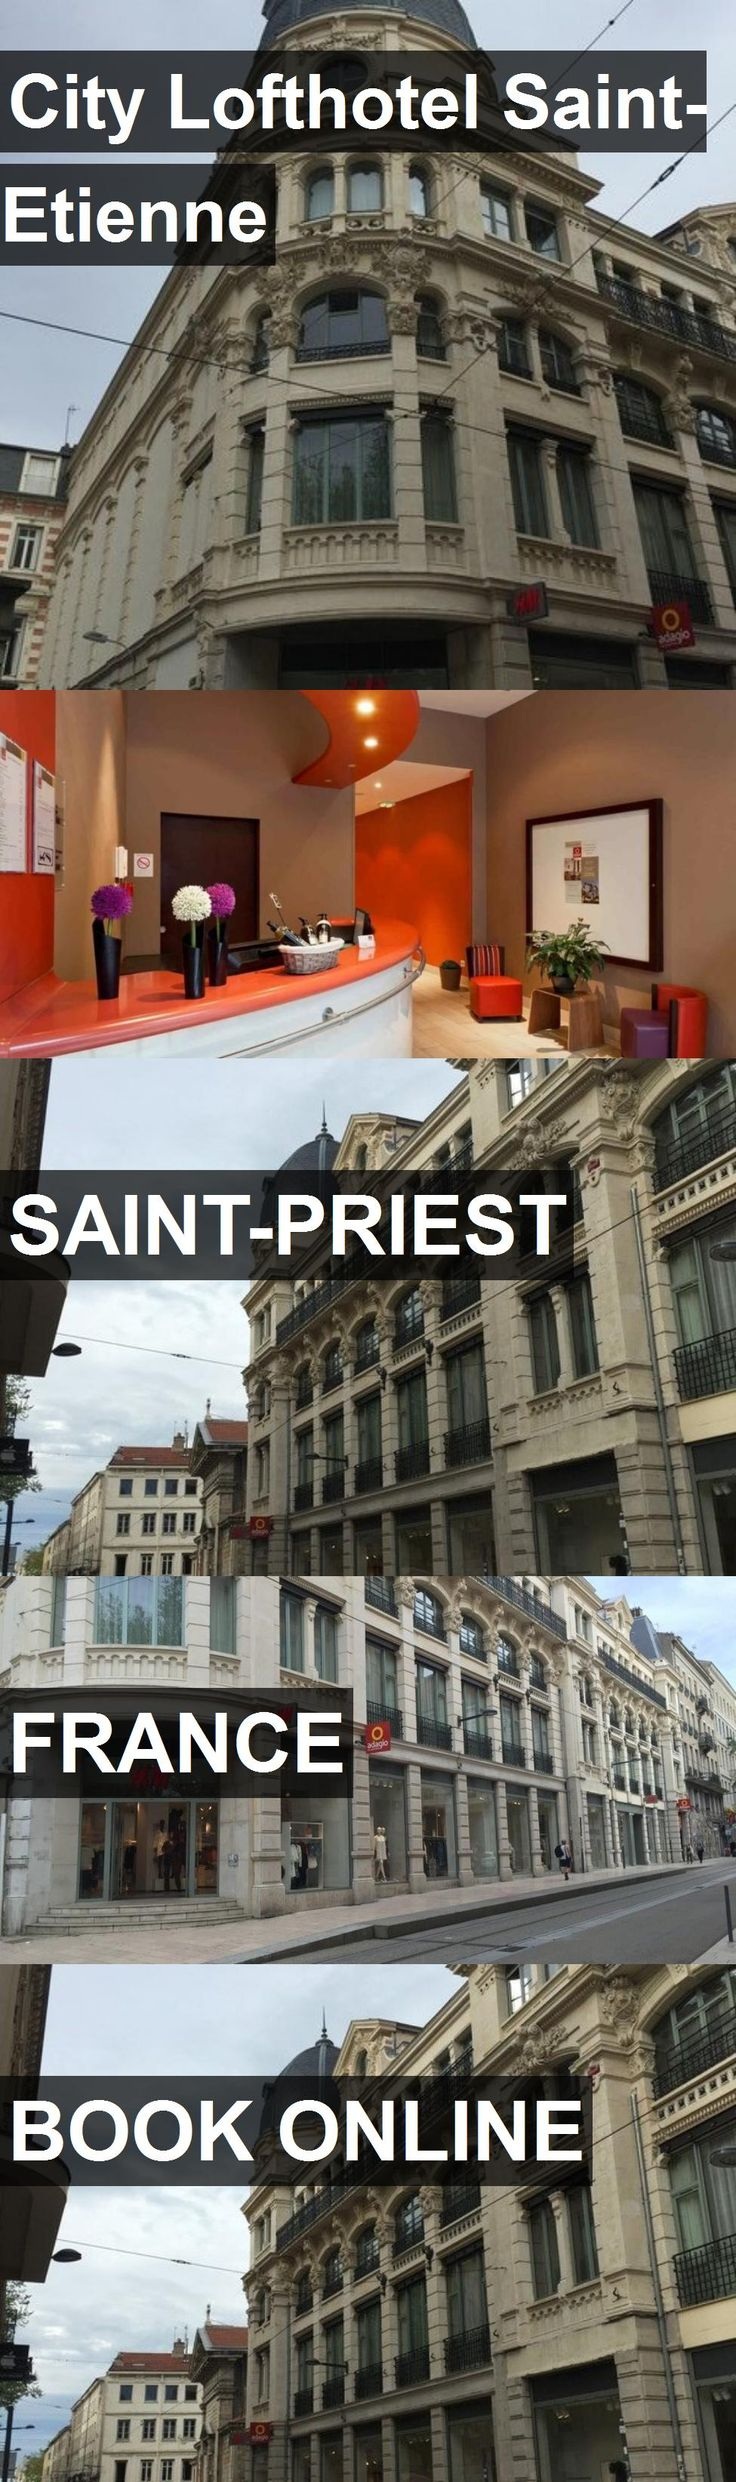 City Lofthotel Saint-Etienne in Saint-Priest, France. For more information, photos, reviews and best prices please follow the link. #France #Saint-Priest #travel #vacation #hotel